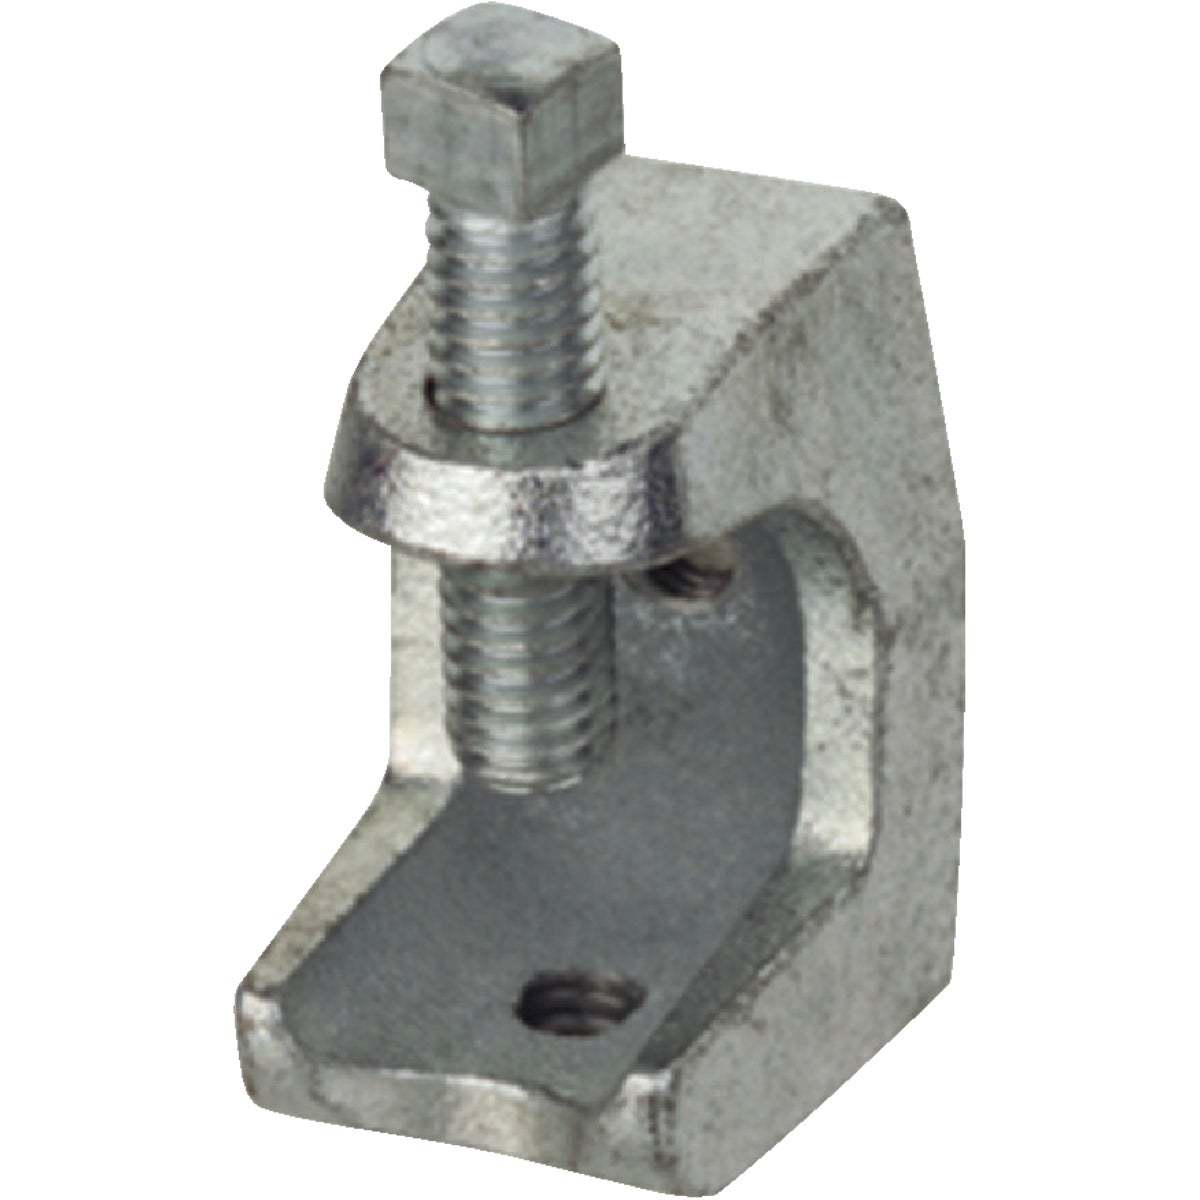 "1/4"" TOP BEAM CLAMP - Z500-25 by Thomas & Betts"